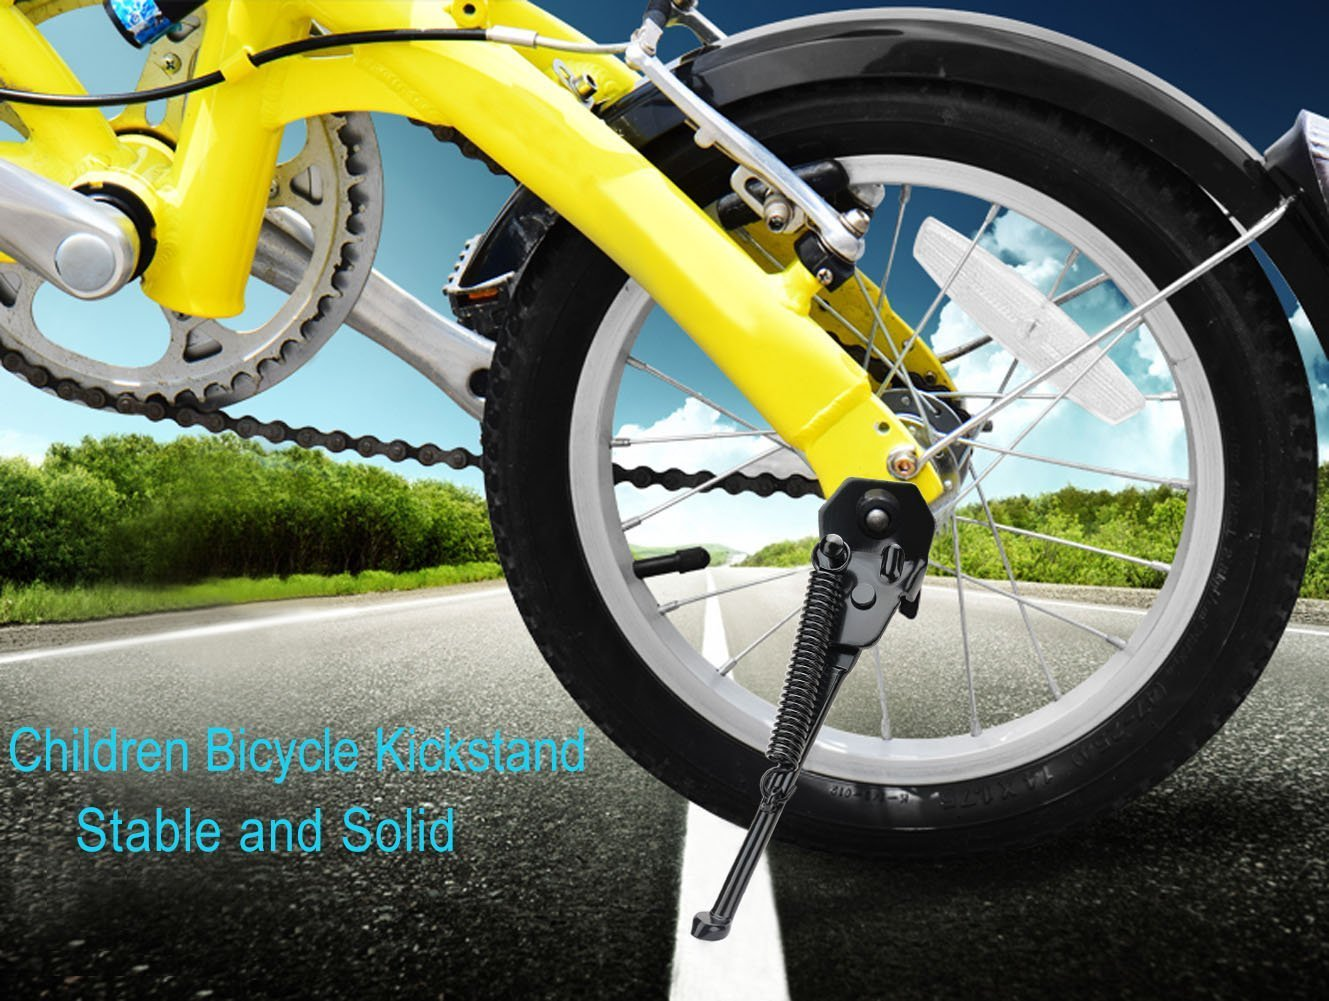 Fansport Bike Kickstand Rear Mount Stand Easy to Install Bicycle Support for Kids Bicycle